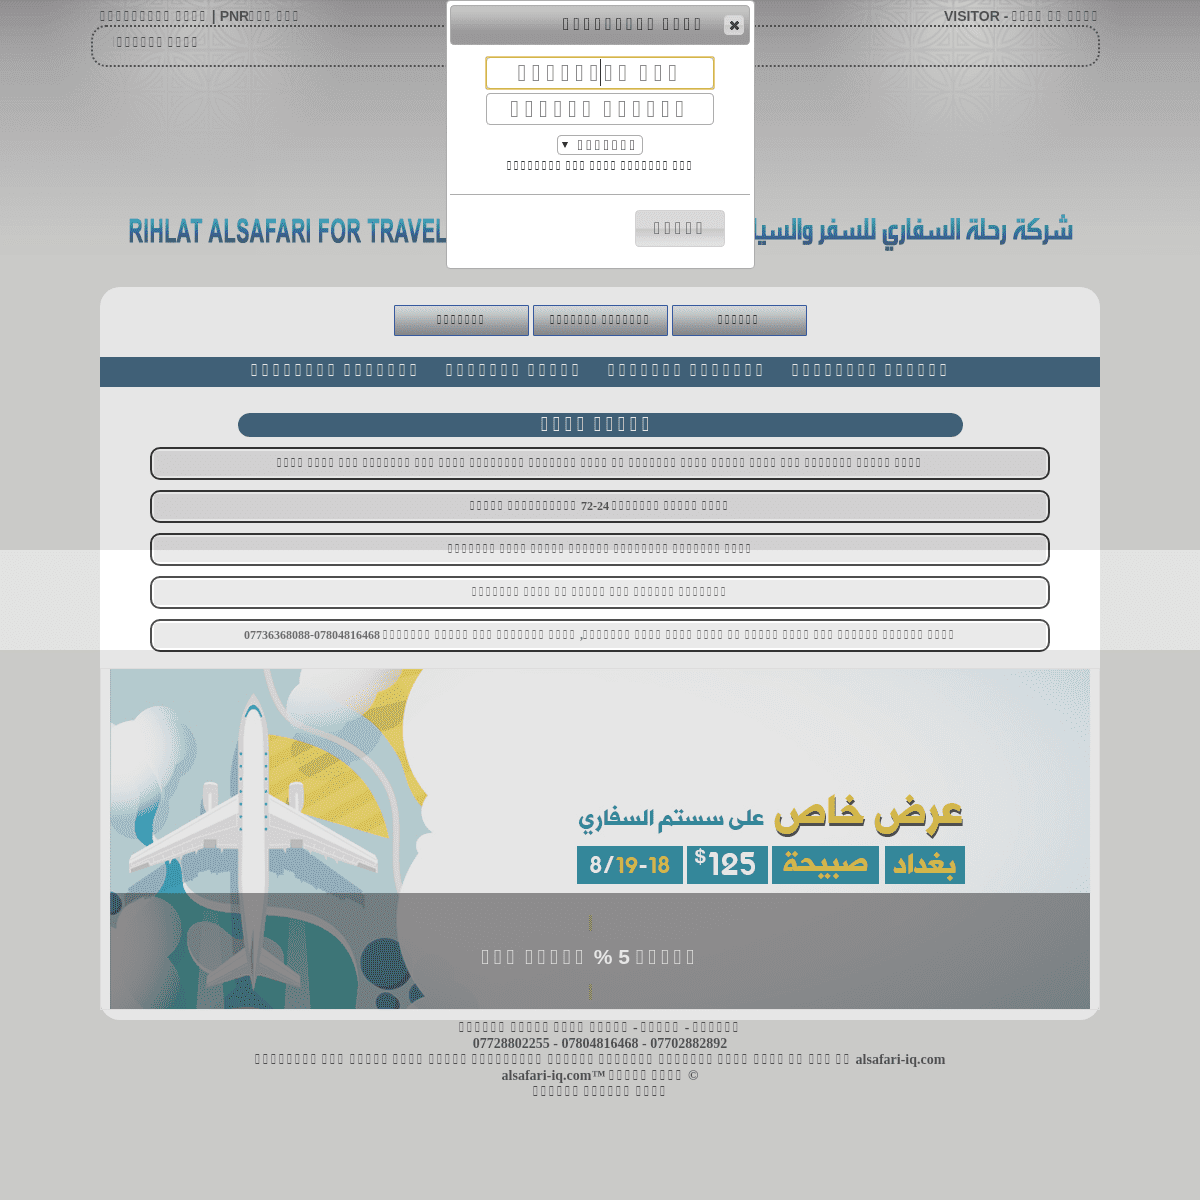 ALSAFARI TICKET BOOKING SYSTEM